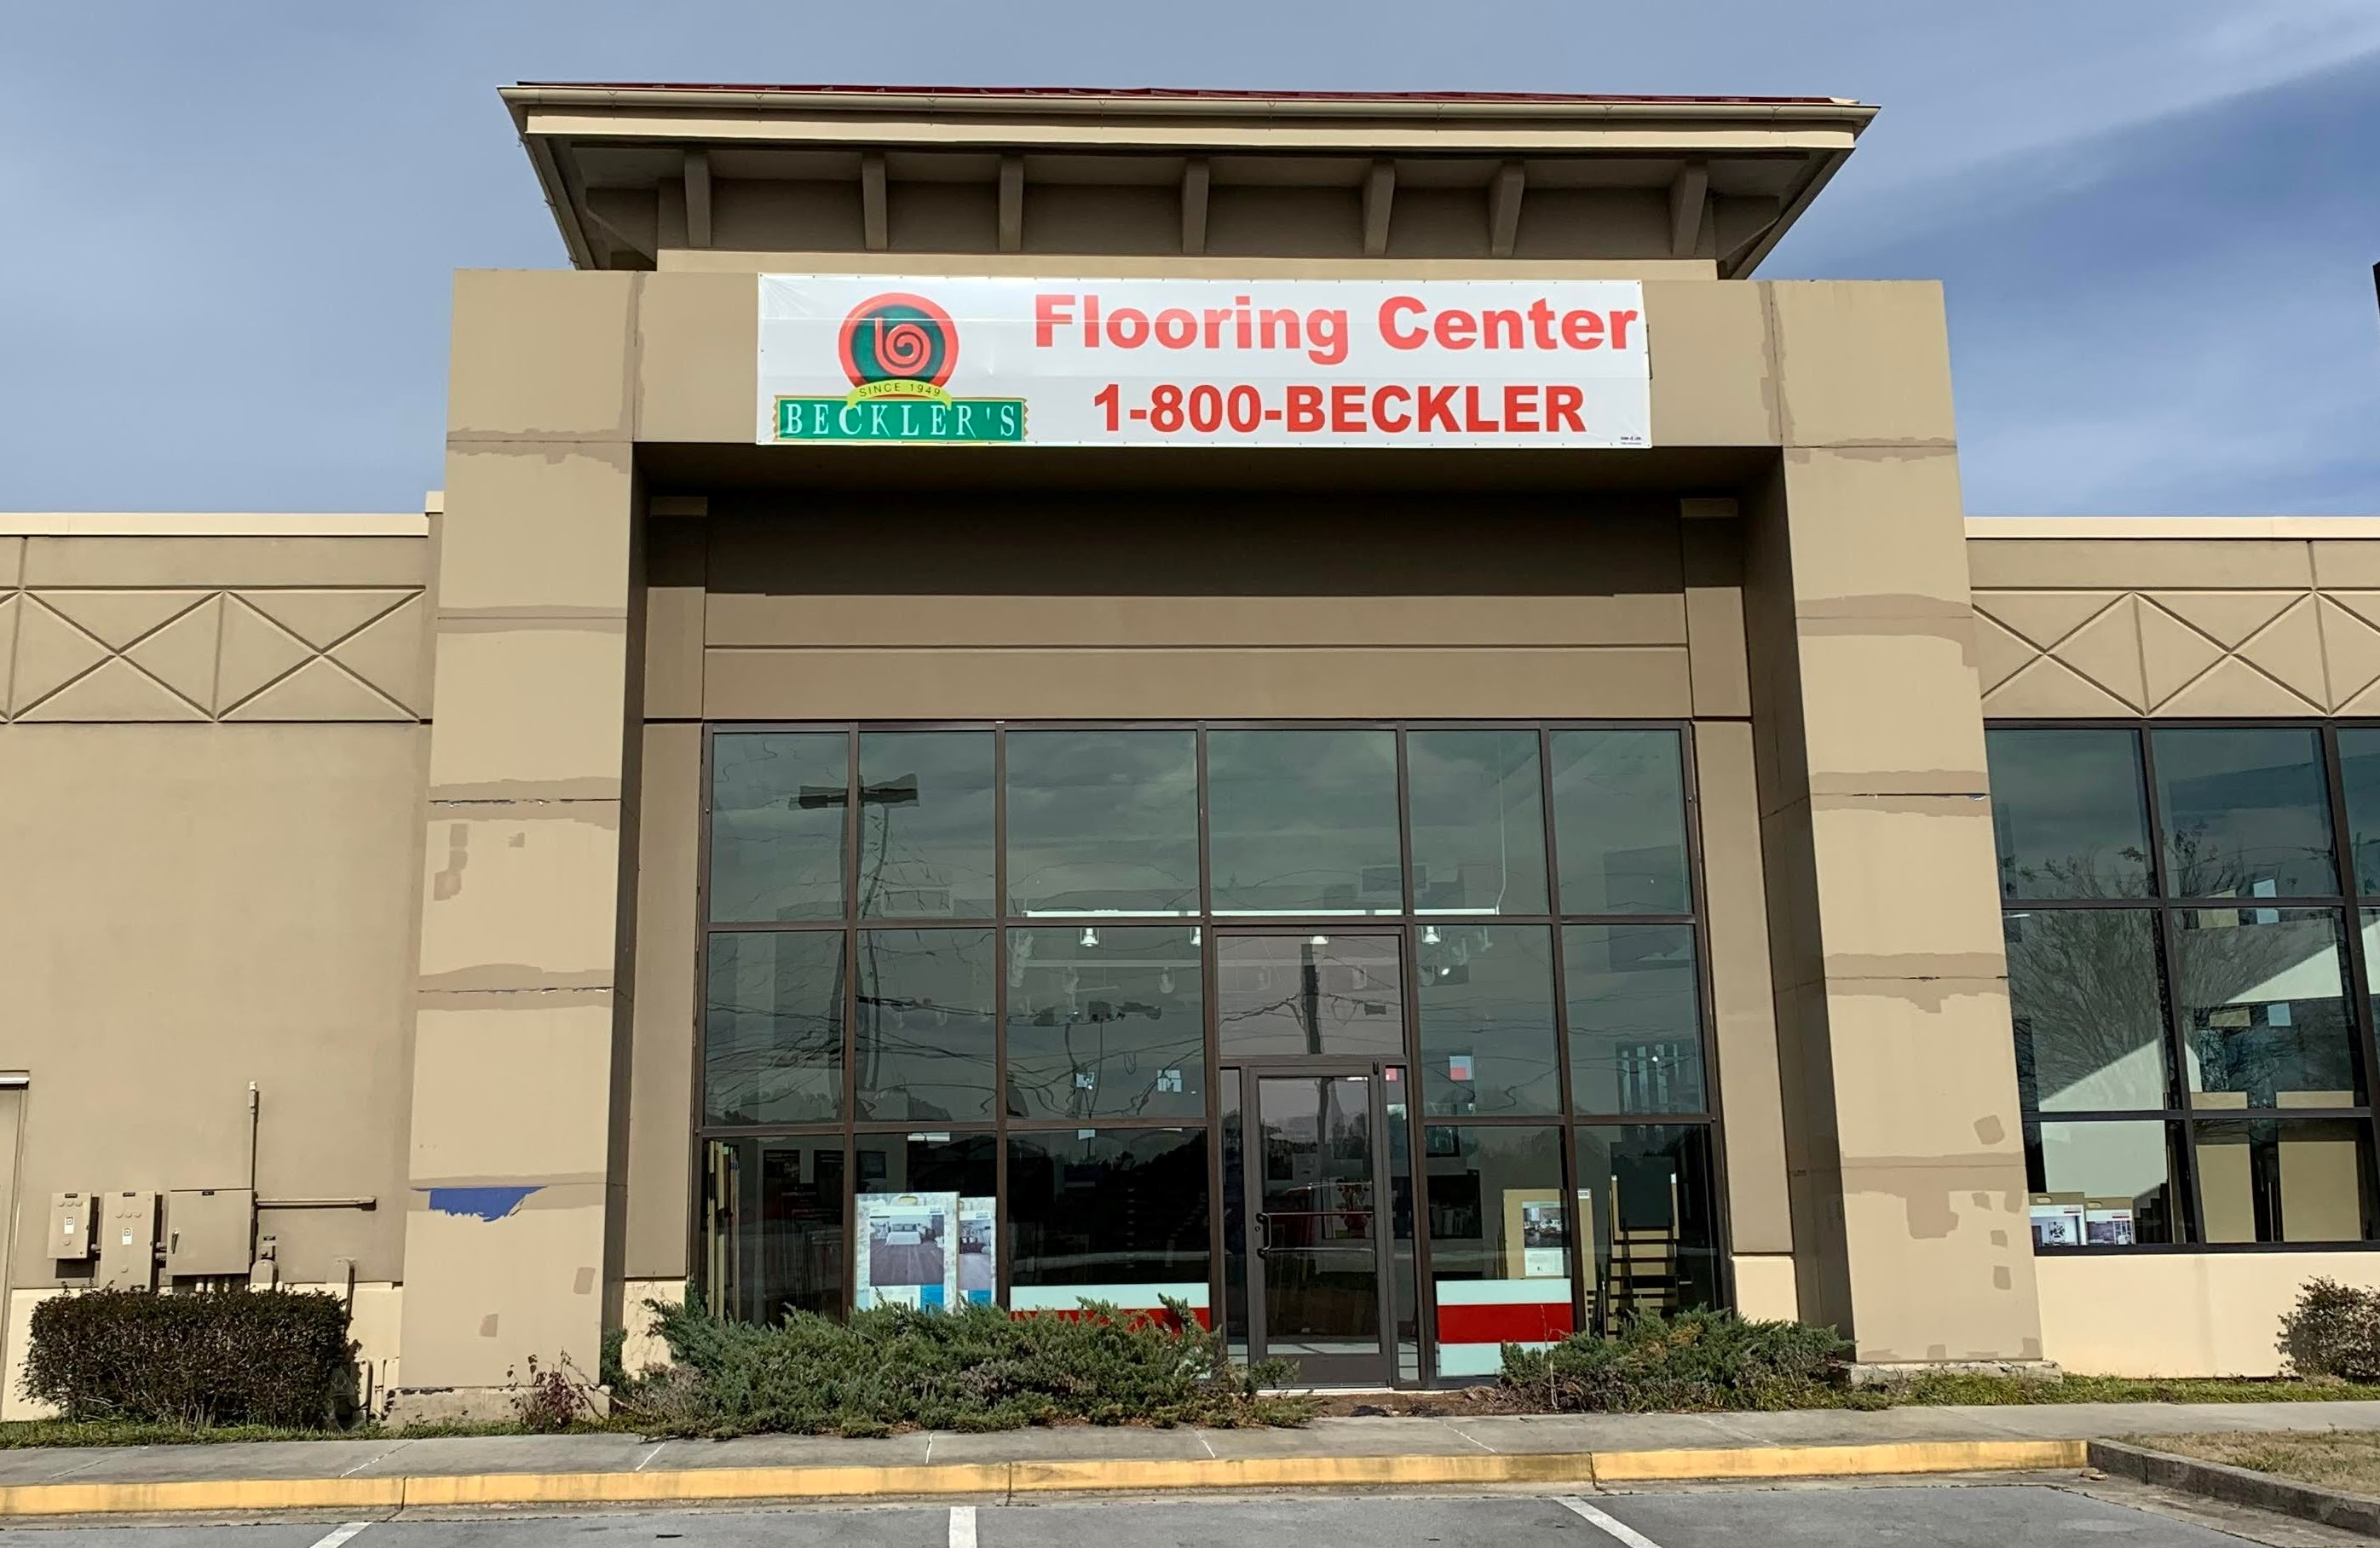 Beckler's Flooring Center - 3089 North Dug Gap Rd SW, Dalton, GA 30720